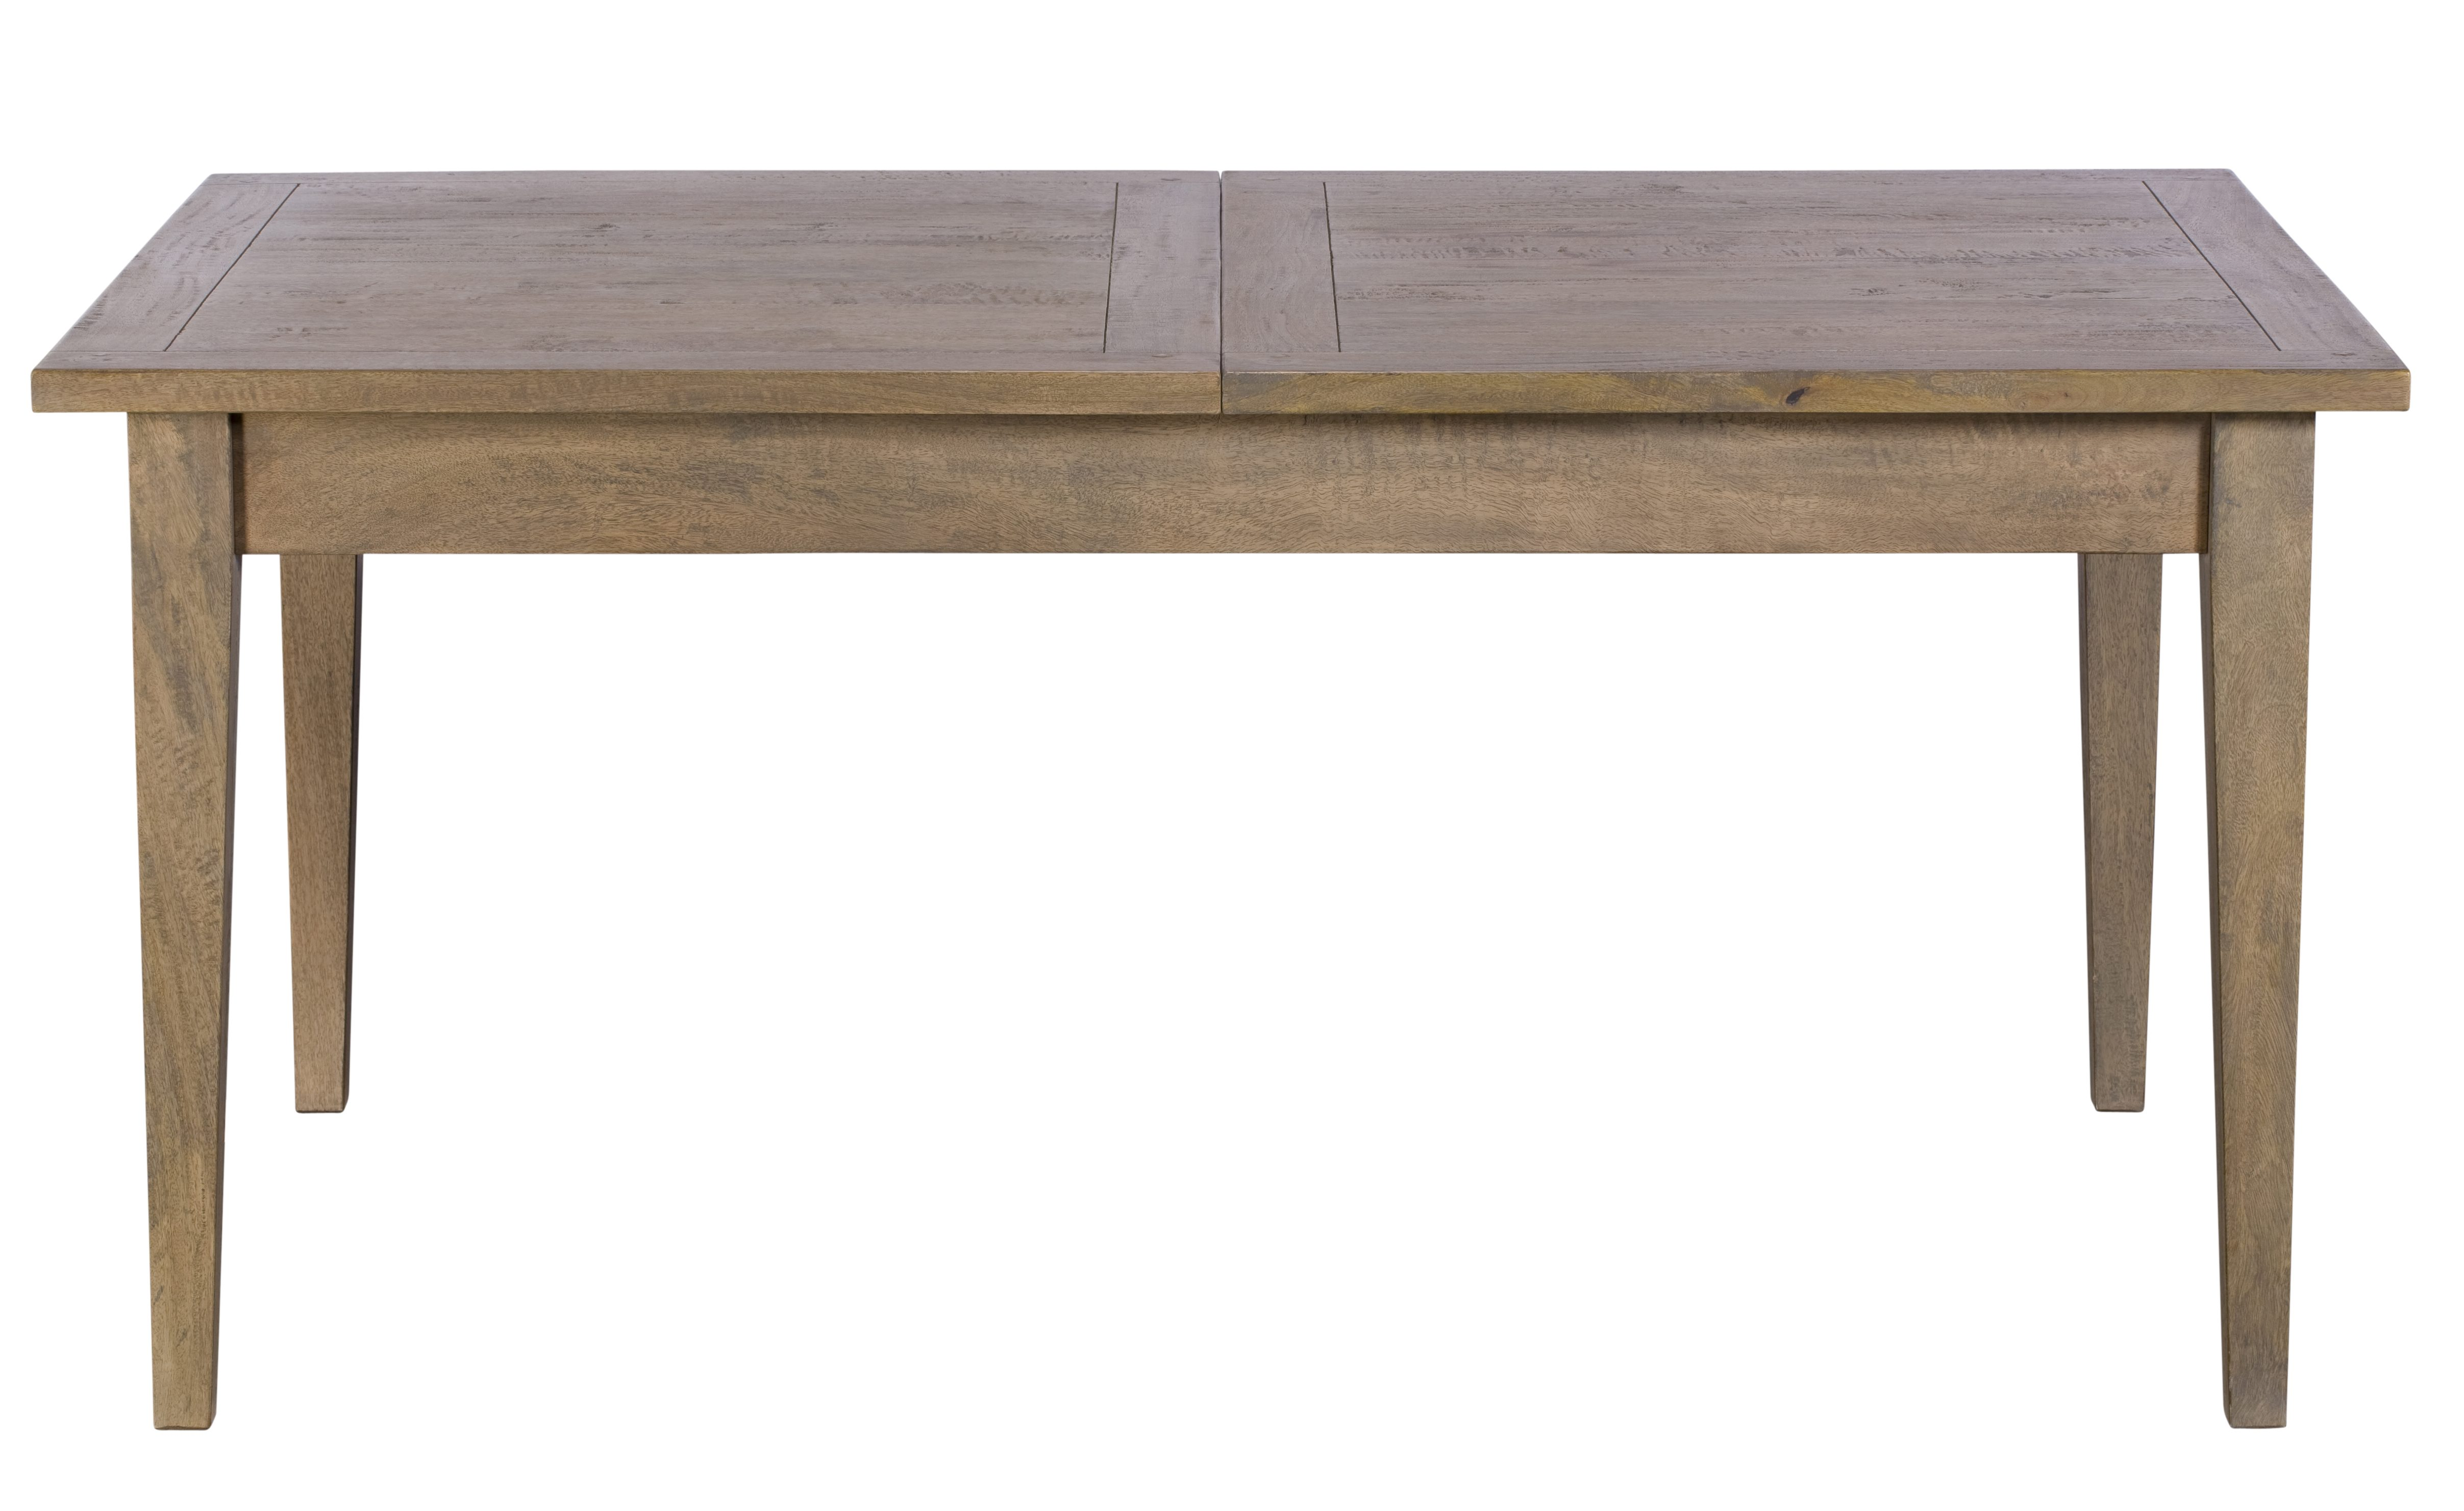 Monterrey 1 Extendable Dining Table TN03 e1573071114462